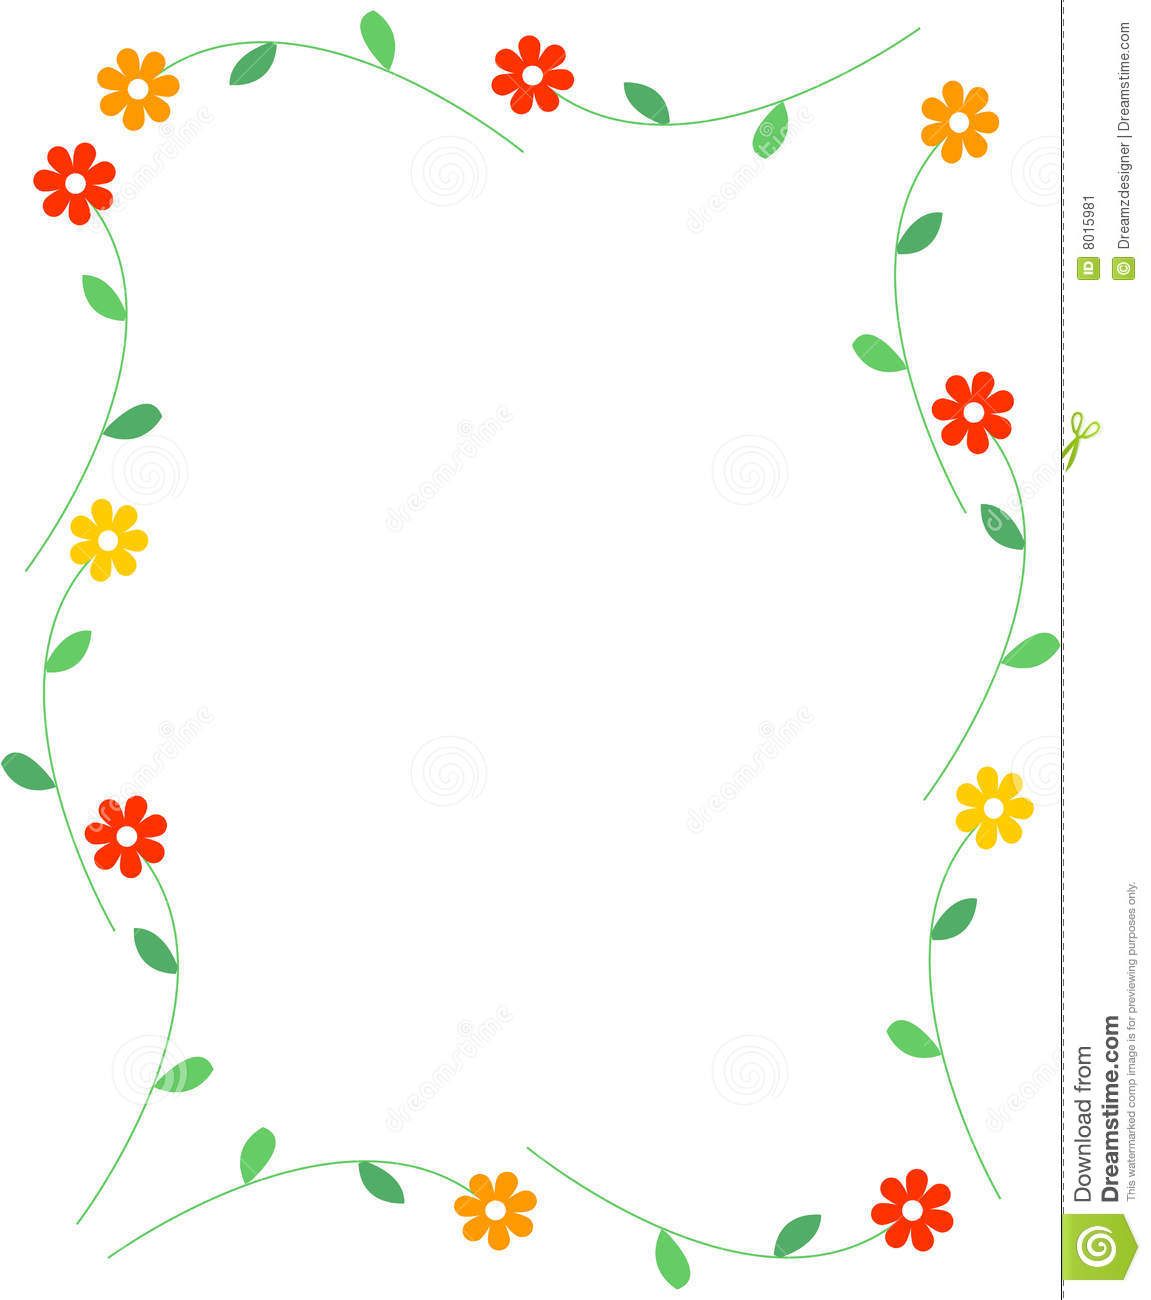 Spring Flowers Border Stock Image - Image: 8015981